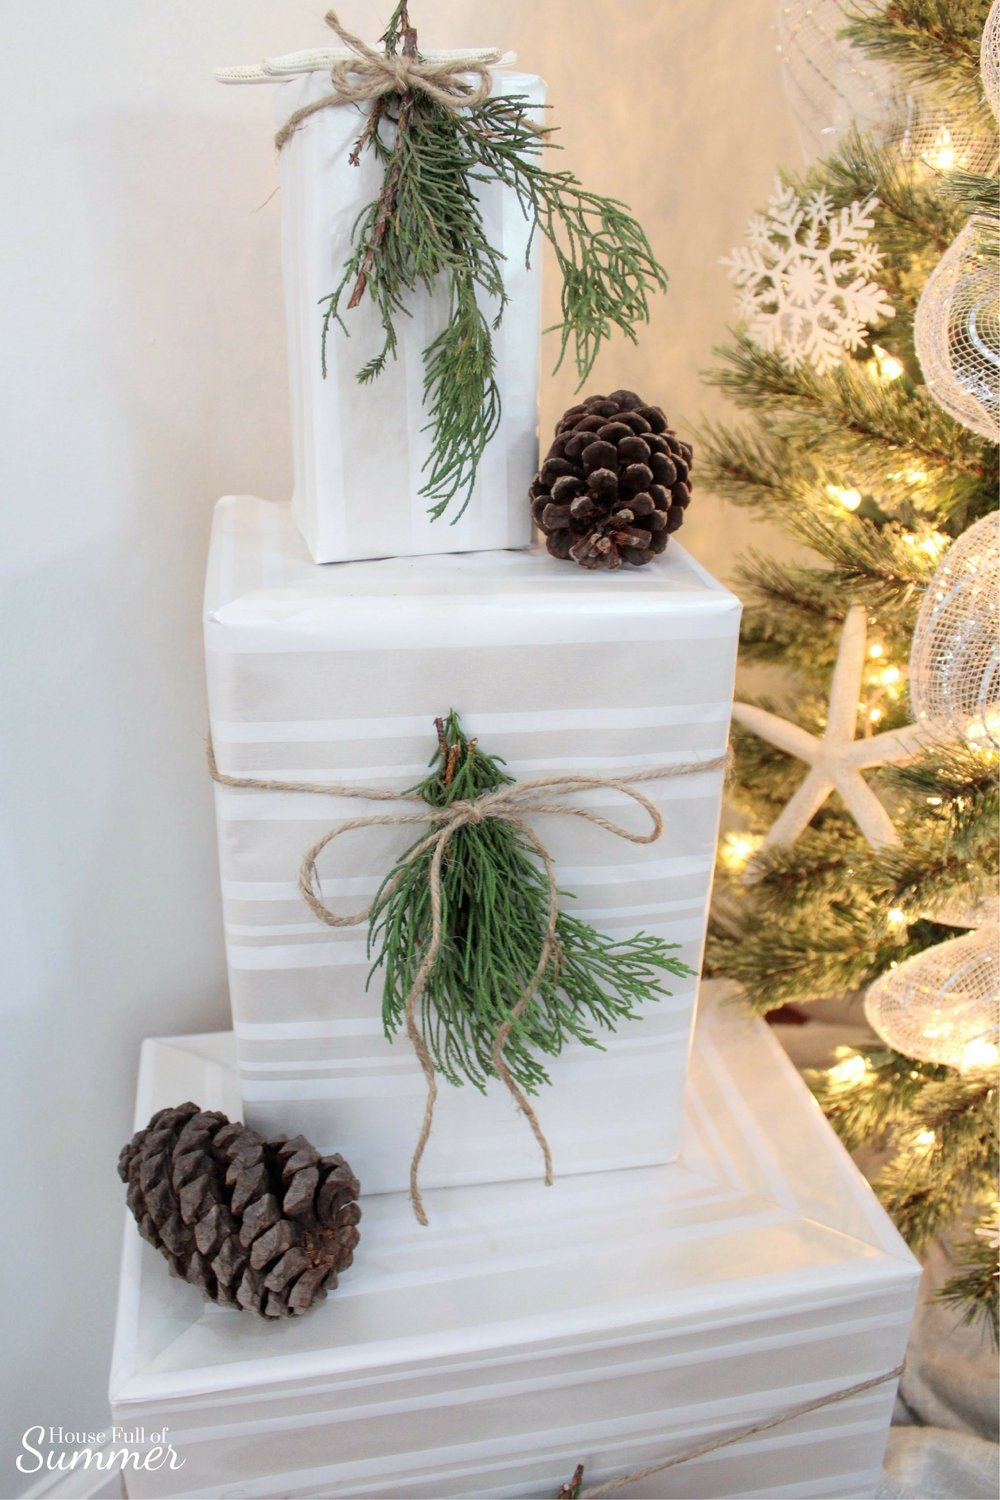 How To Make Fresh Pine Swags | House Full of Summer blog - diy christmas ideas, simple christmas decor, fresh greenery in christmas decor, holiday decor, coastal home christmas decor, classy decor, beachy christmas ideas, home interior, chair swag, pine swag, misteltoe, garland gift wrapping ideas